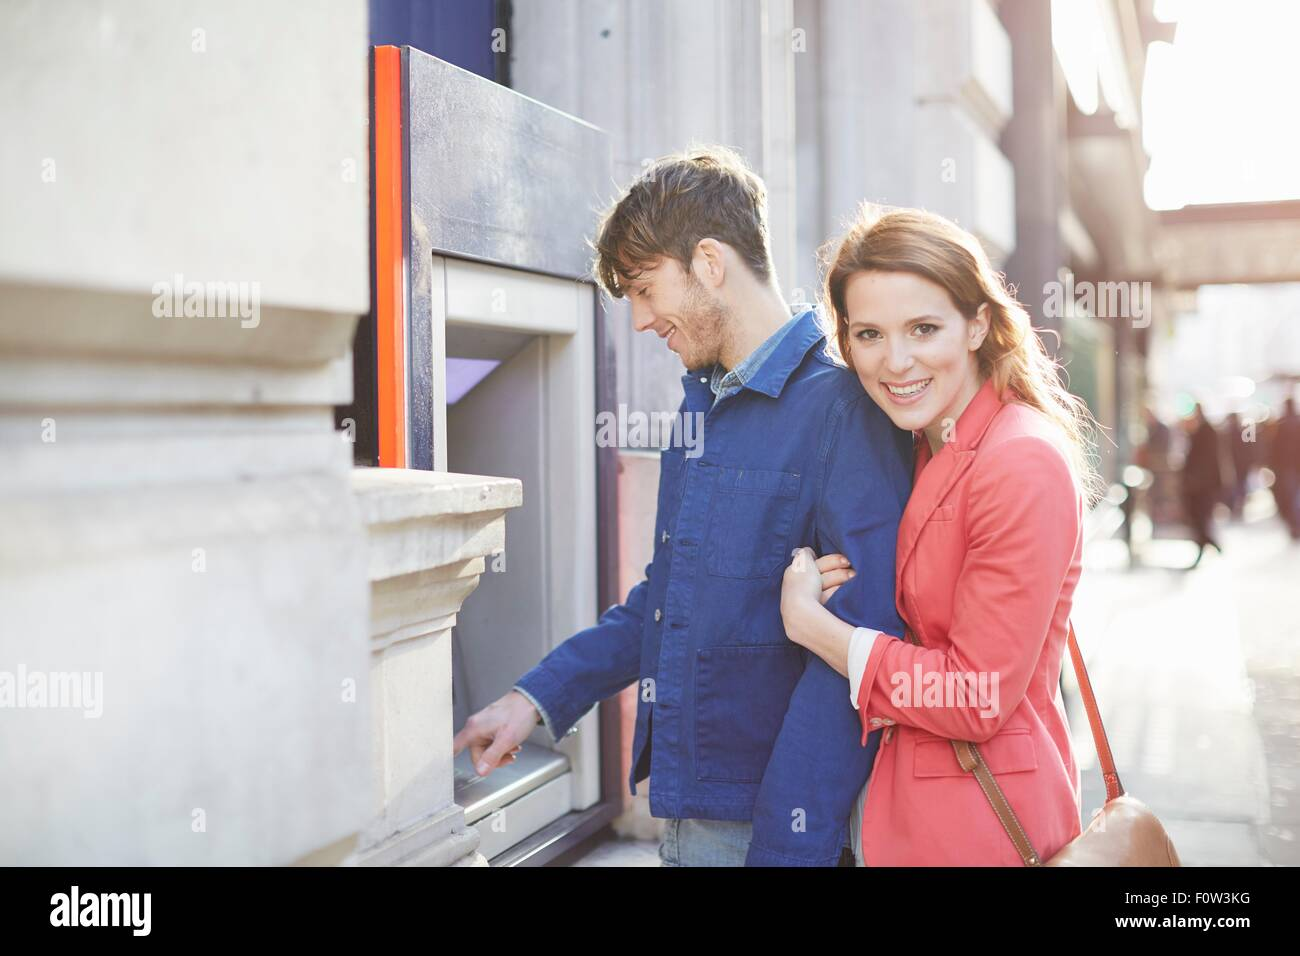 Couple withdrawing money from street cash machine, London, UK - Stock Image